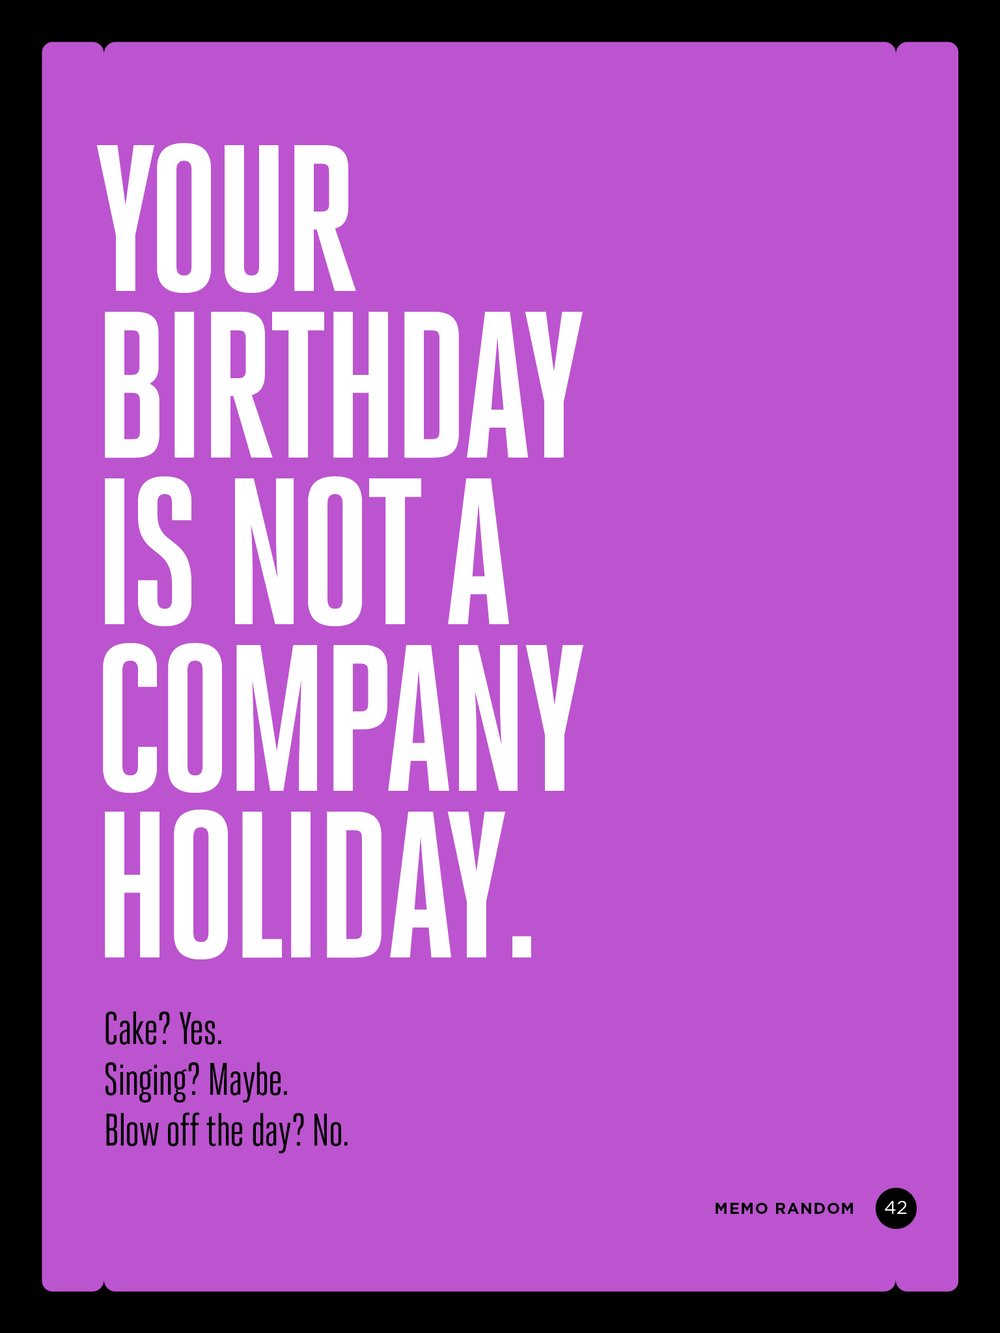 042 your birthday is not a company holiday memo randoms